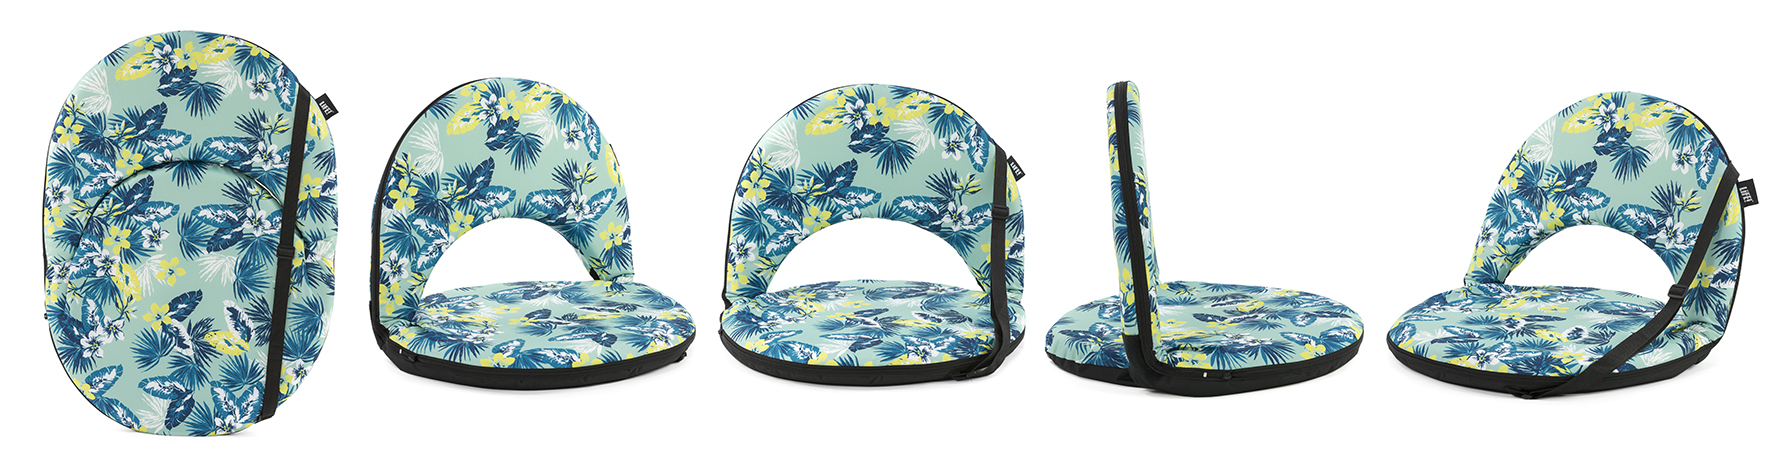 The leaf tropical print cushion recliner chair from the front and sides and also showing it laying flat with carry handle ready for easy transport